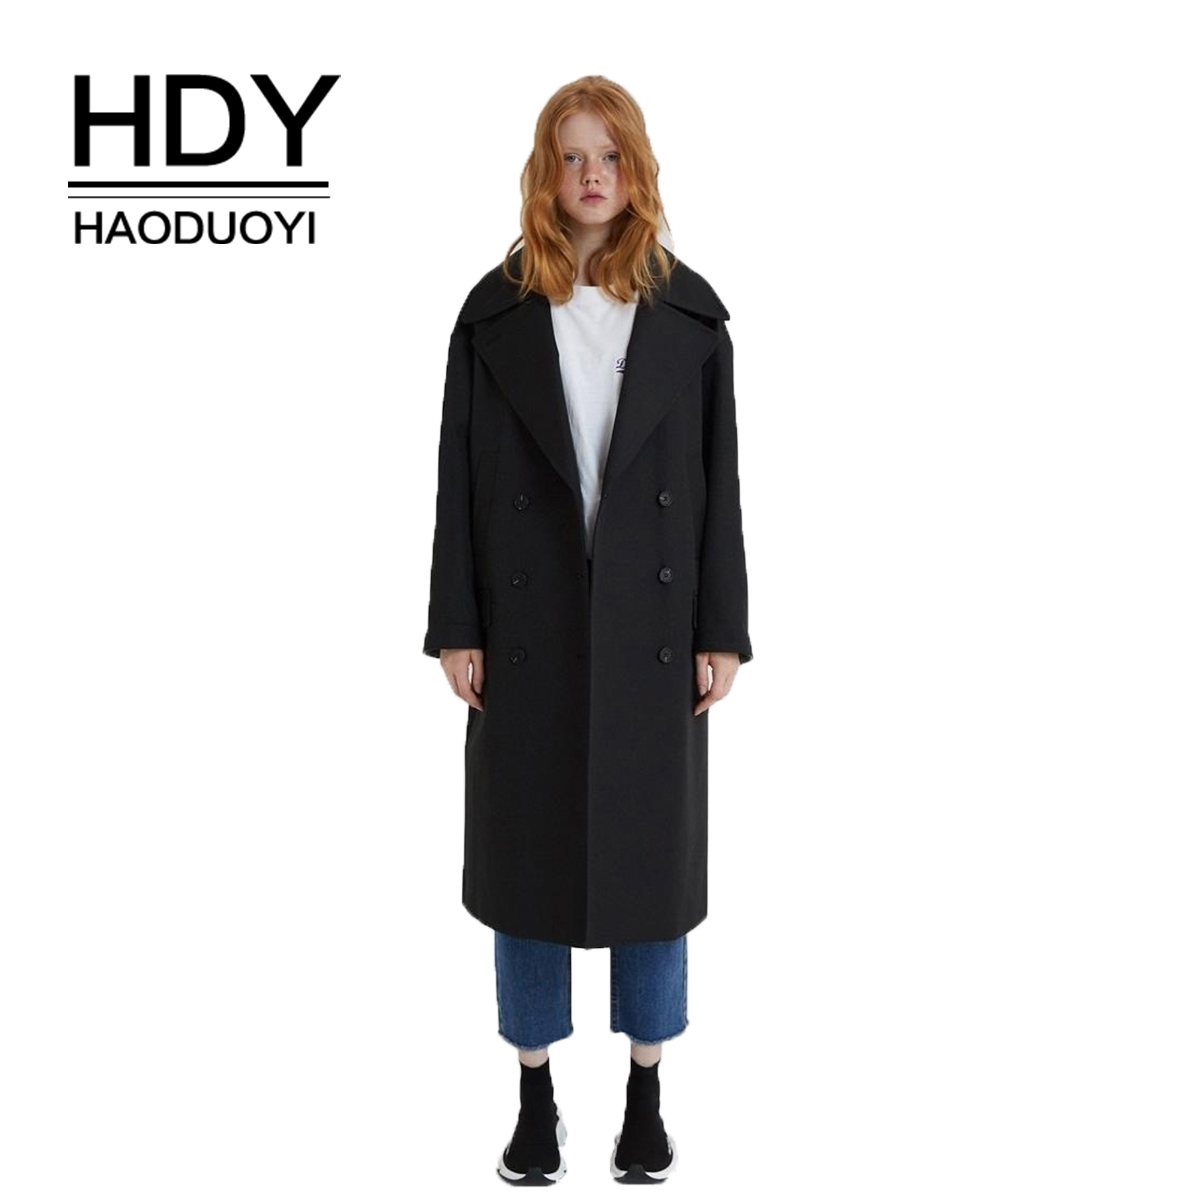 HDY haoduoyi Classic Loose Large Lapel Single-breasted Overcoat Cuff Plaid Long Woolen Coat